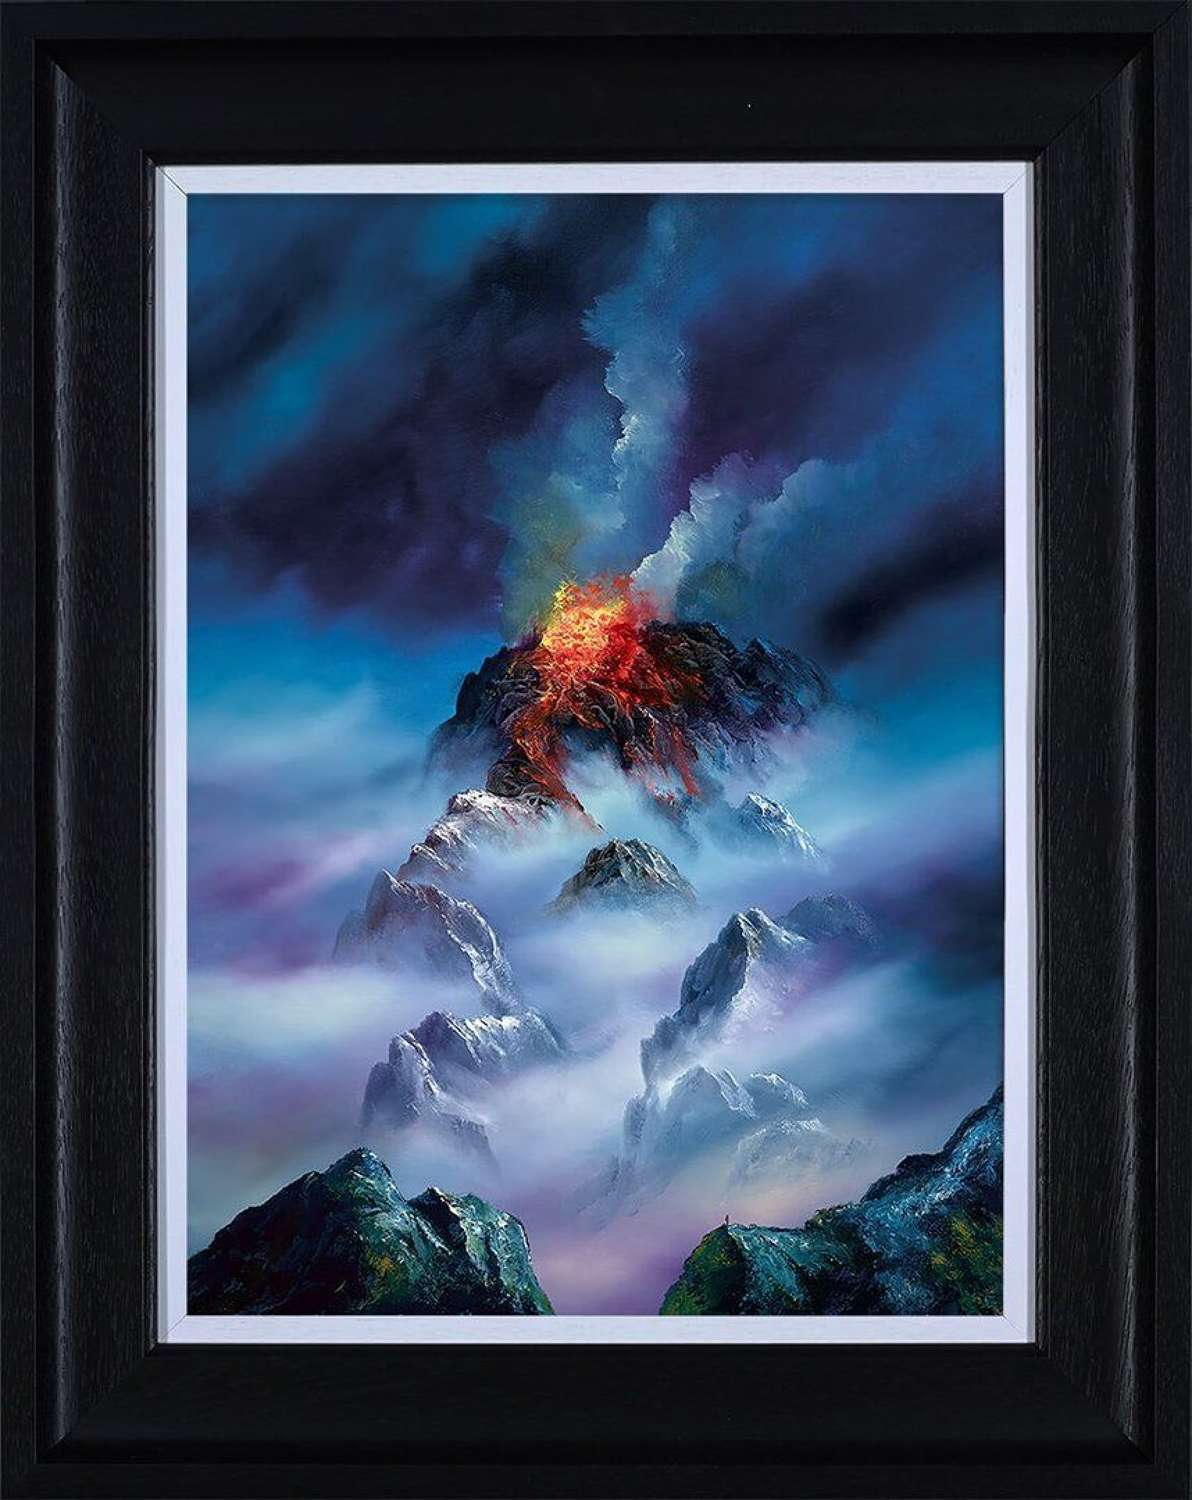 Blazing Clouds - Framed Canvas Art Print by Philip Gray